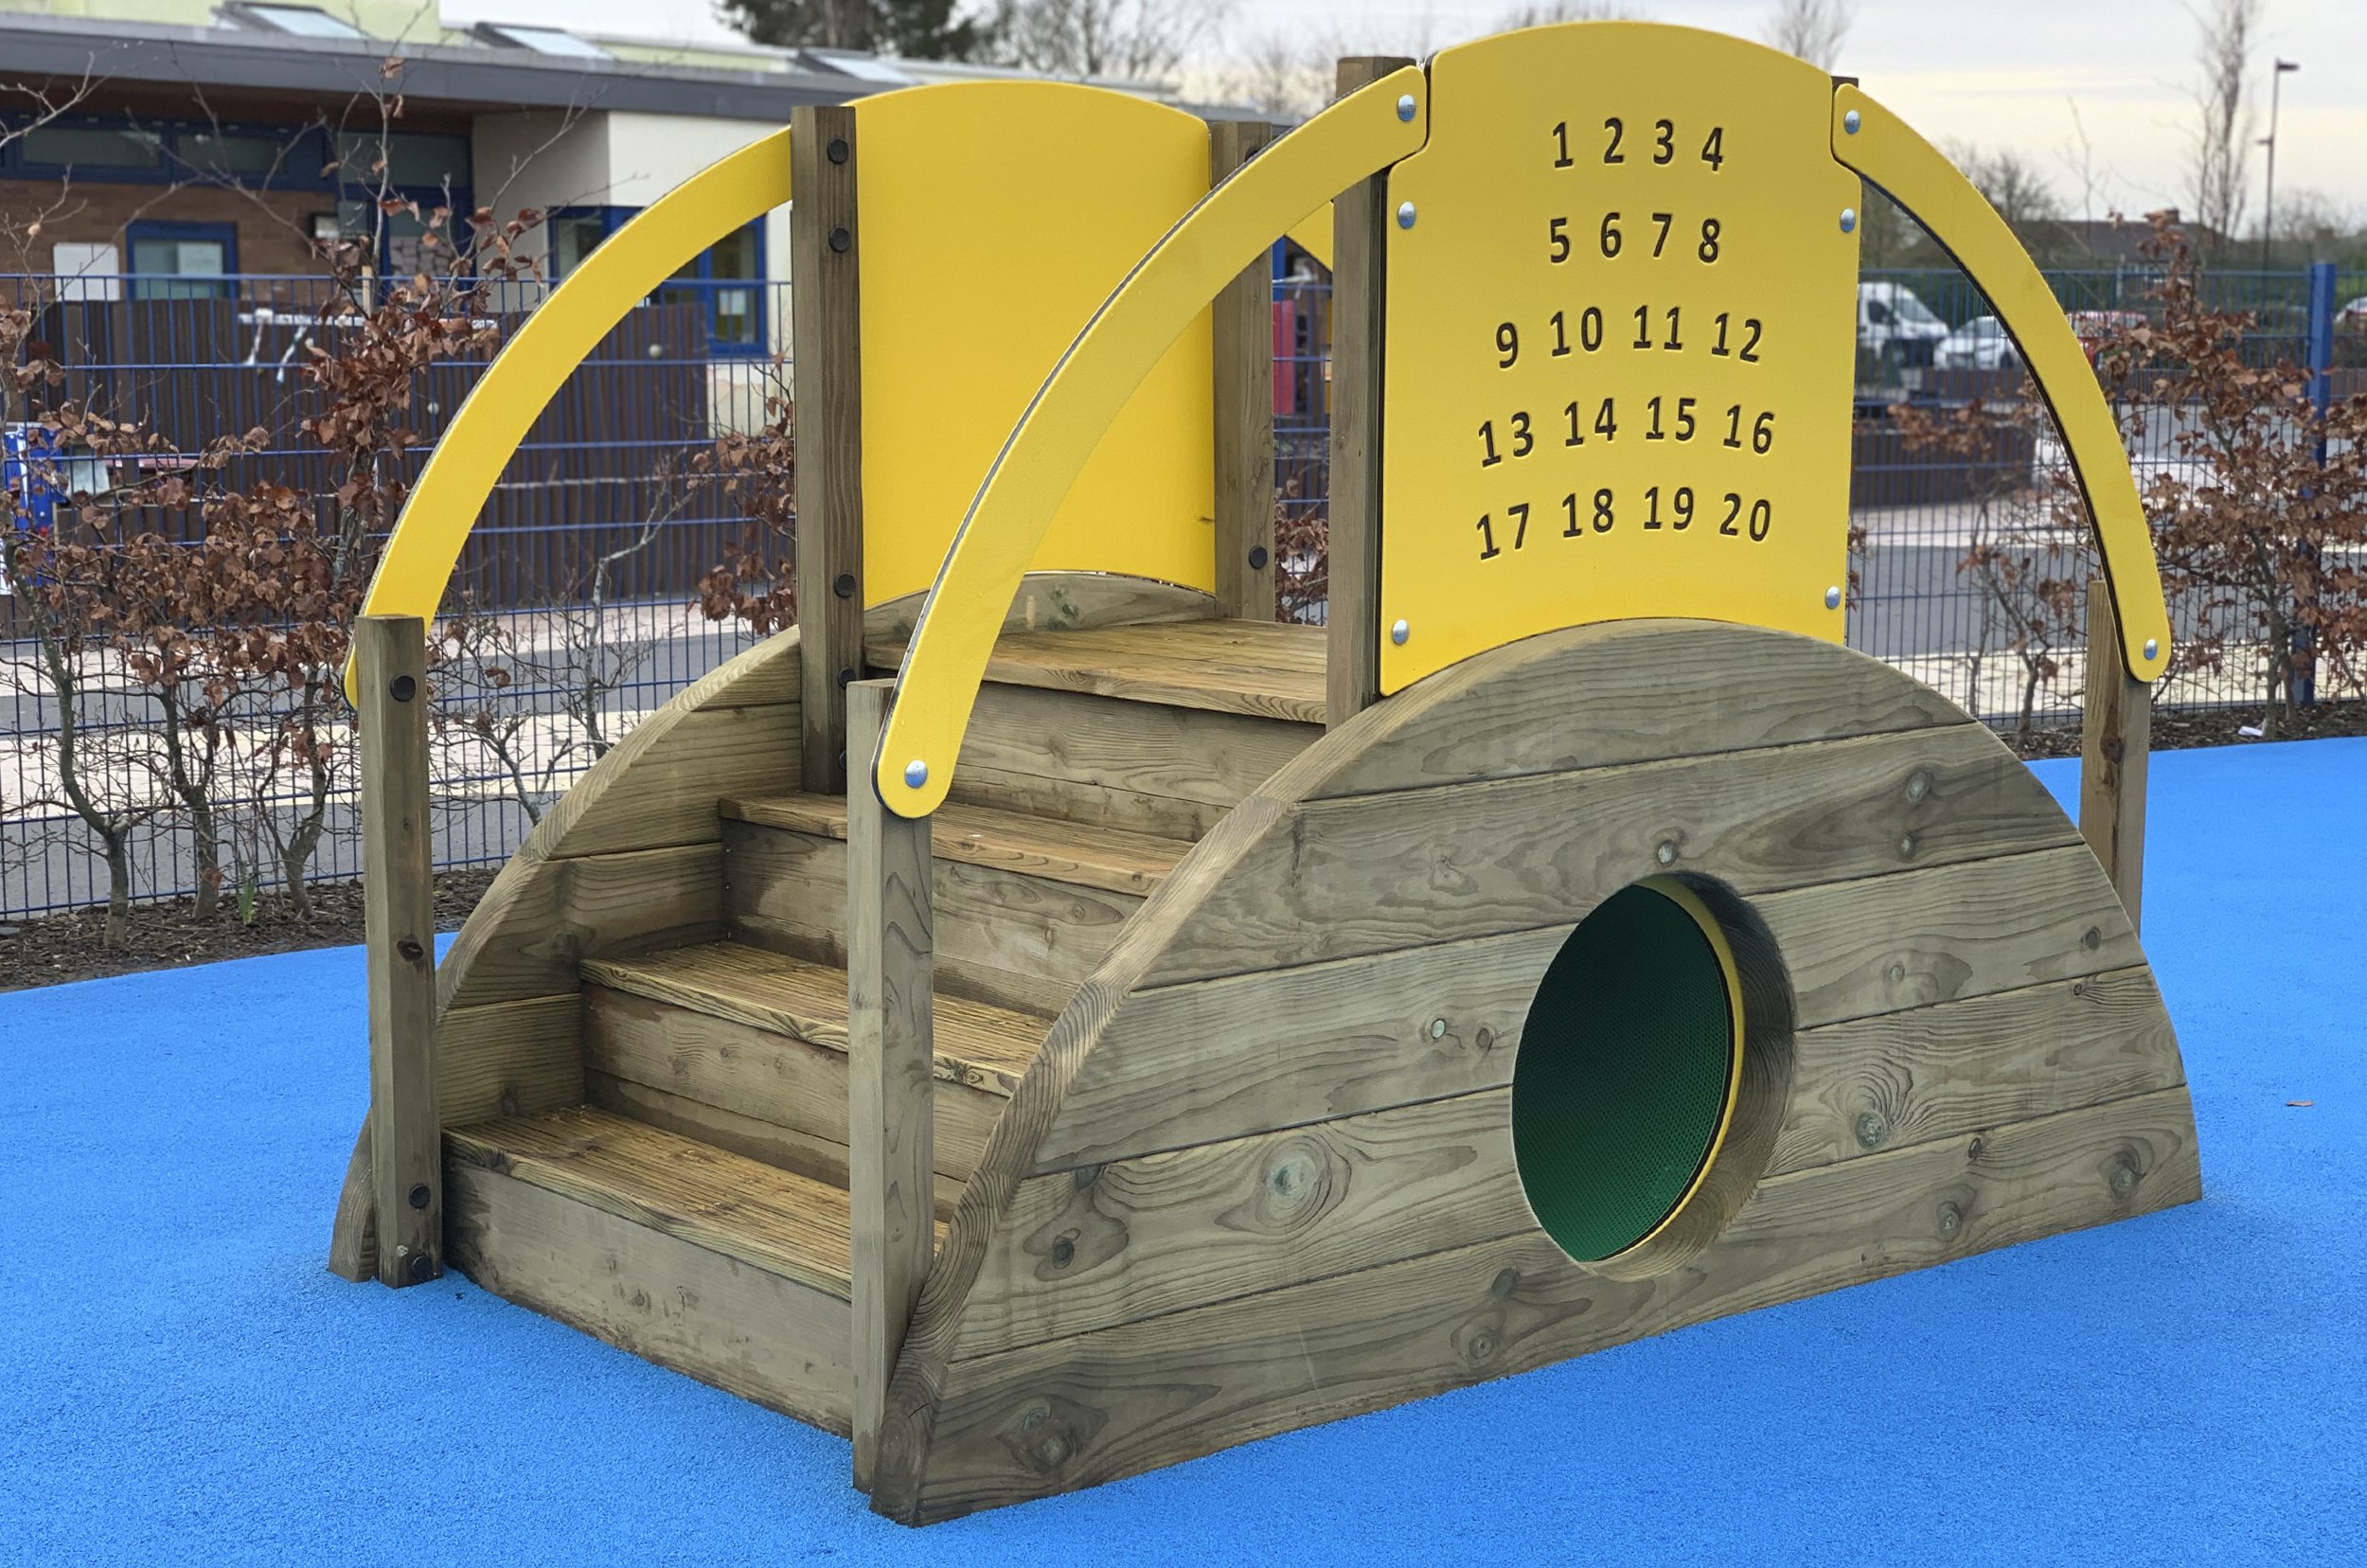 Sleeper Tunnel With Steps, the timber steps sit on the right with the green tunnel entrance at the centre. The yellow play panel show numbers 1-20